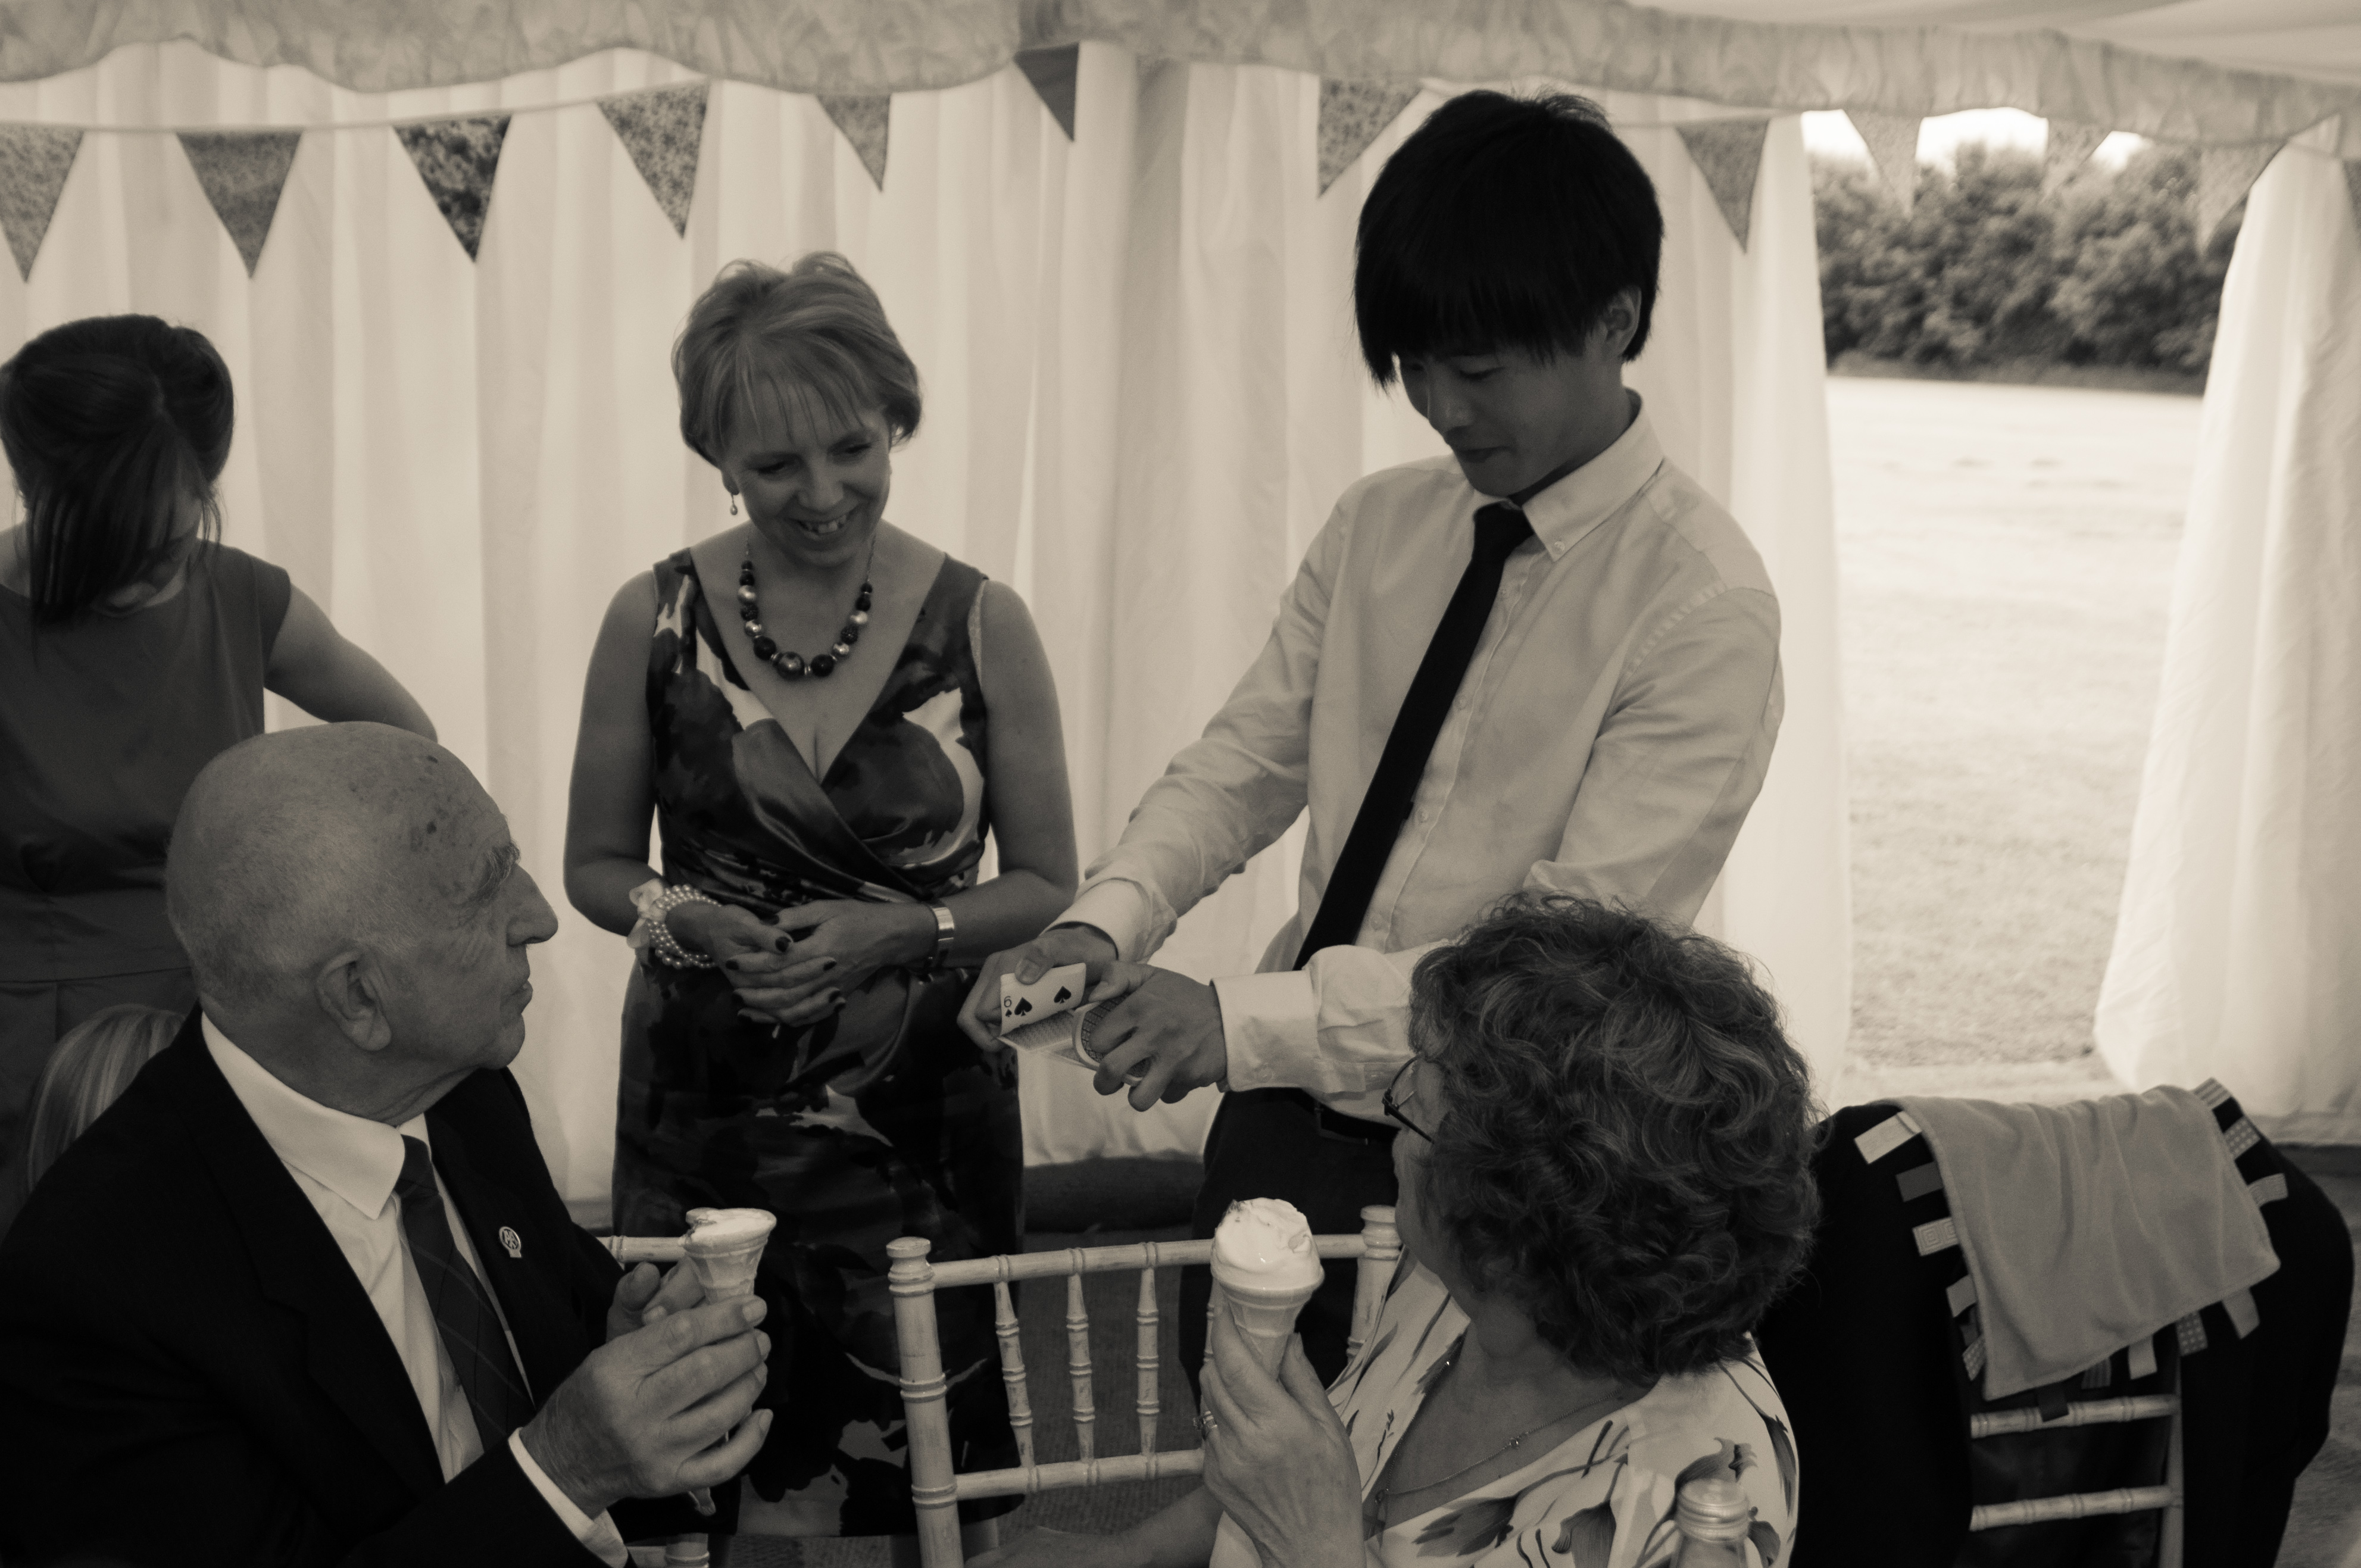 Gary+and+Abi+29th+June+2013-39-2651472032-O.jpg